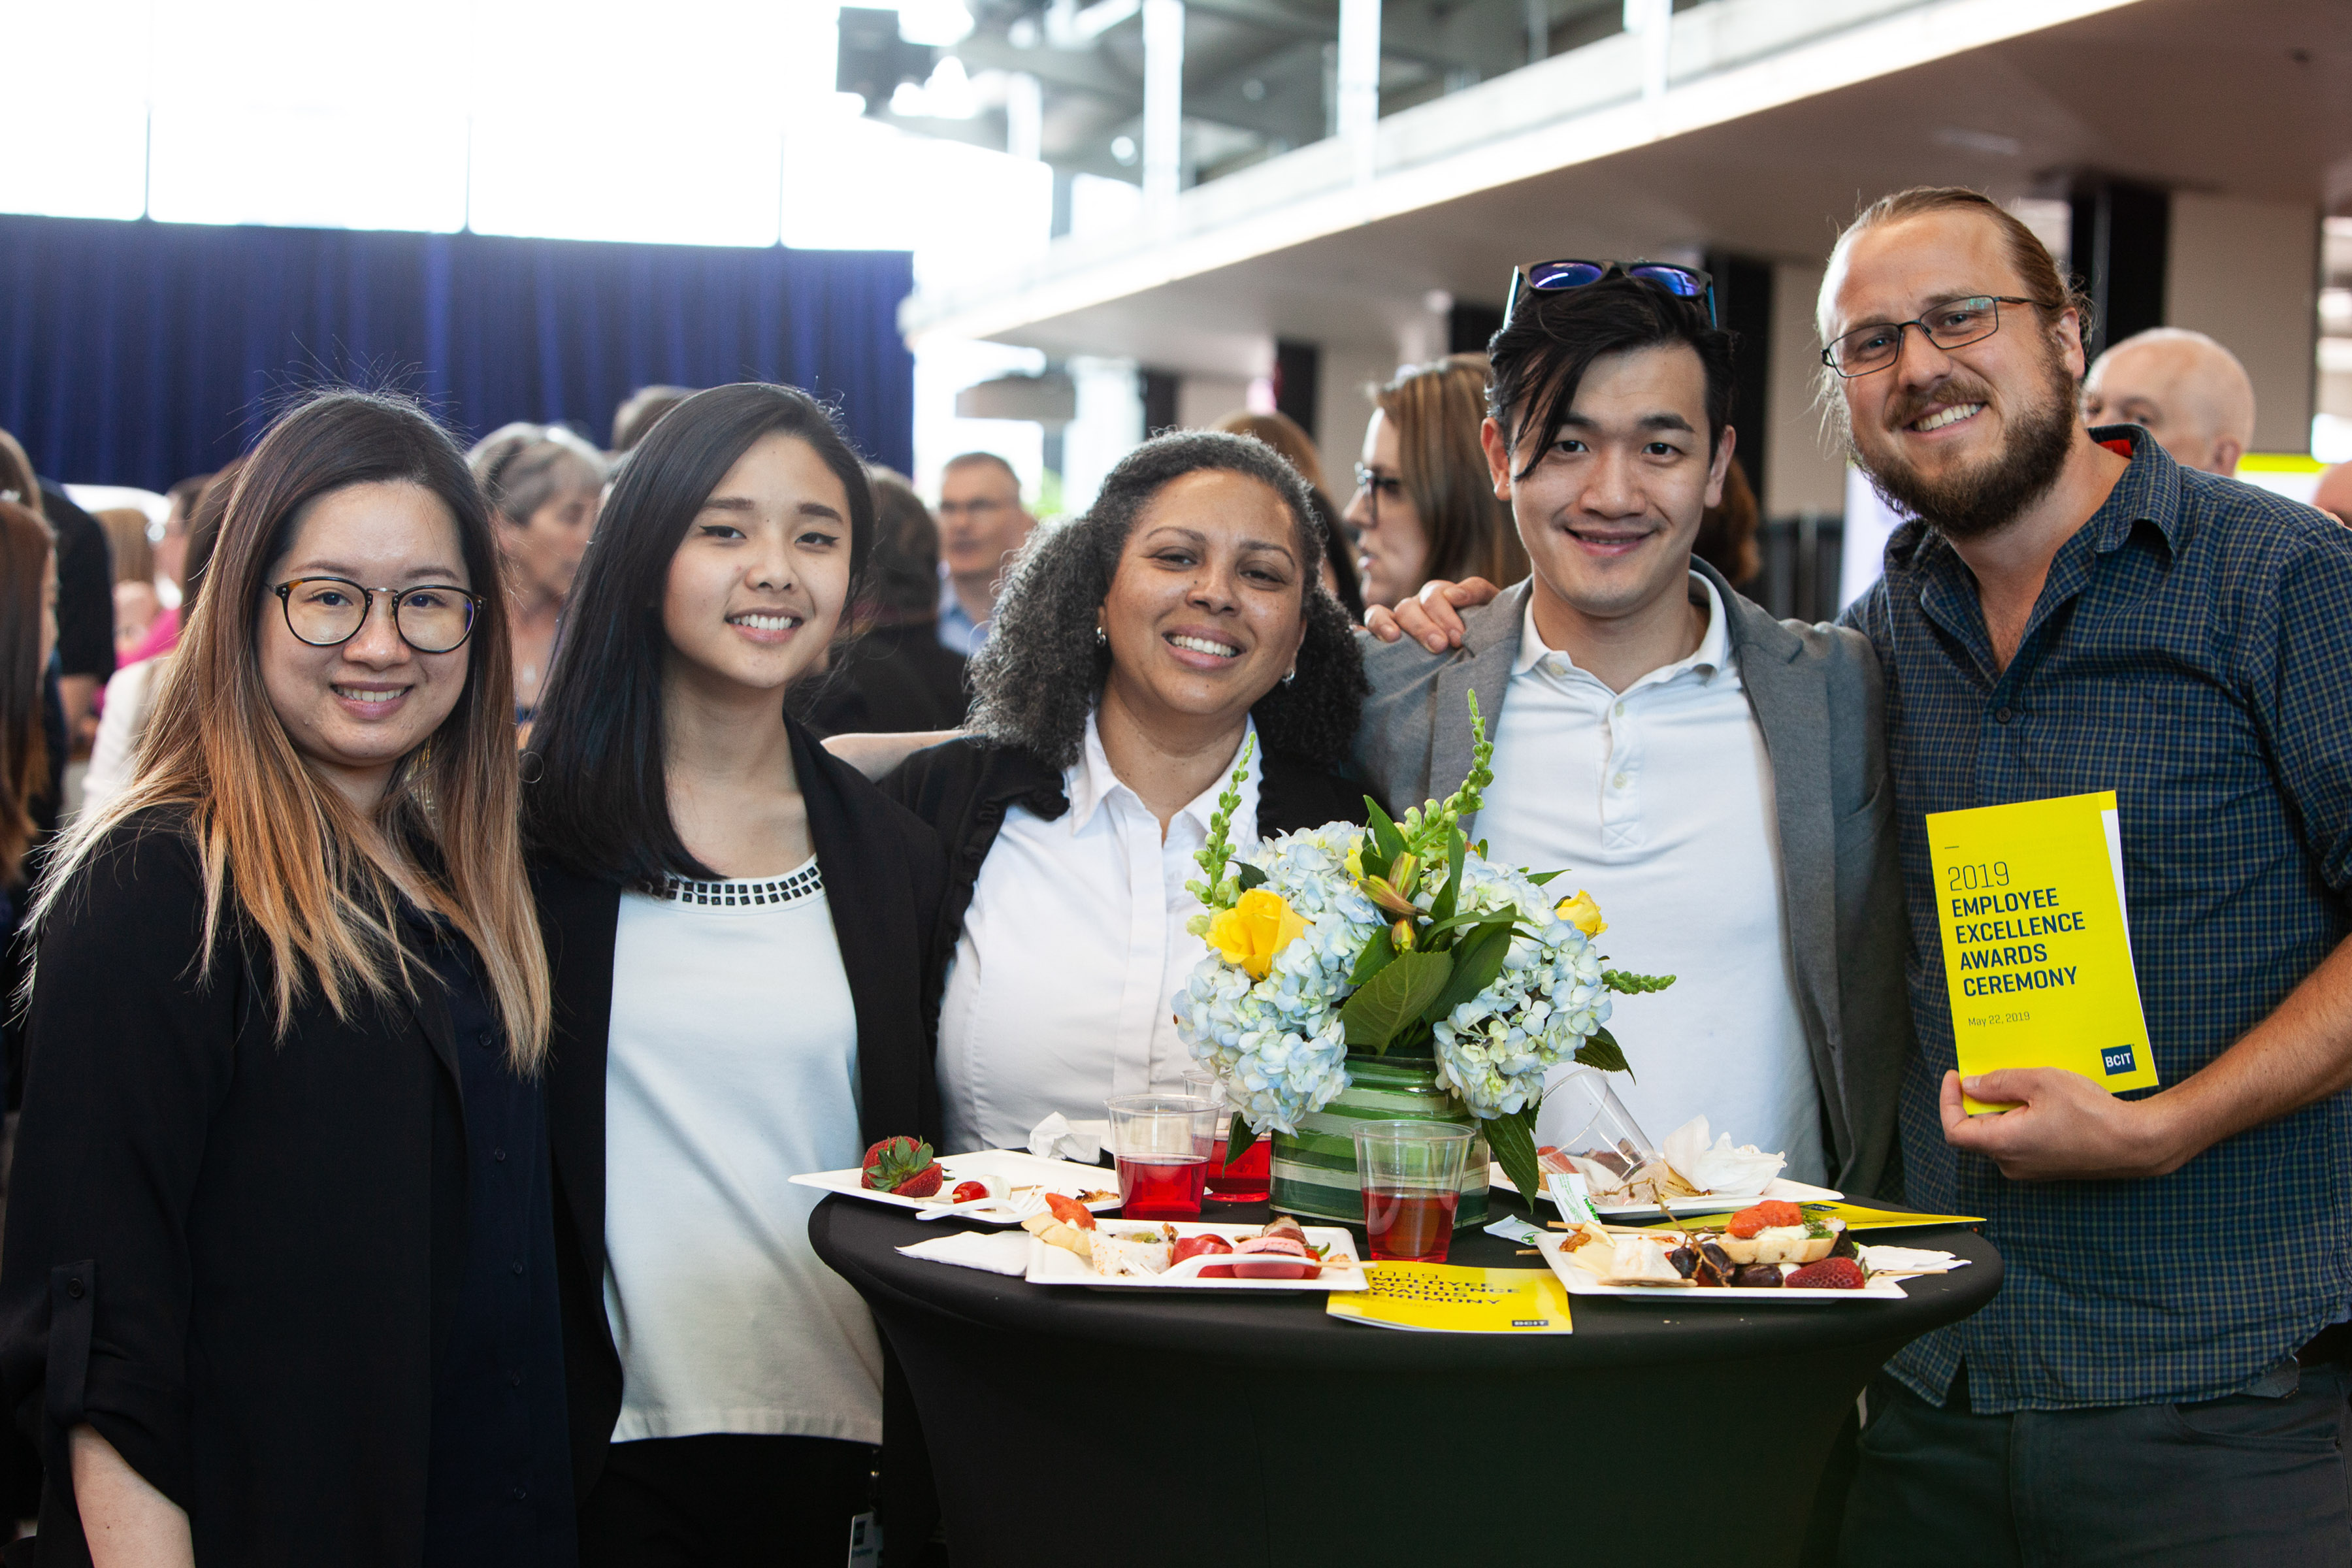 Five BCIT employees stand together in front of a table of flowers at the 2019 BCIT Employee Excellence awards.